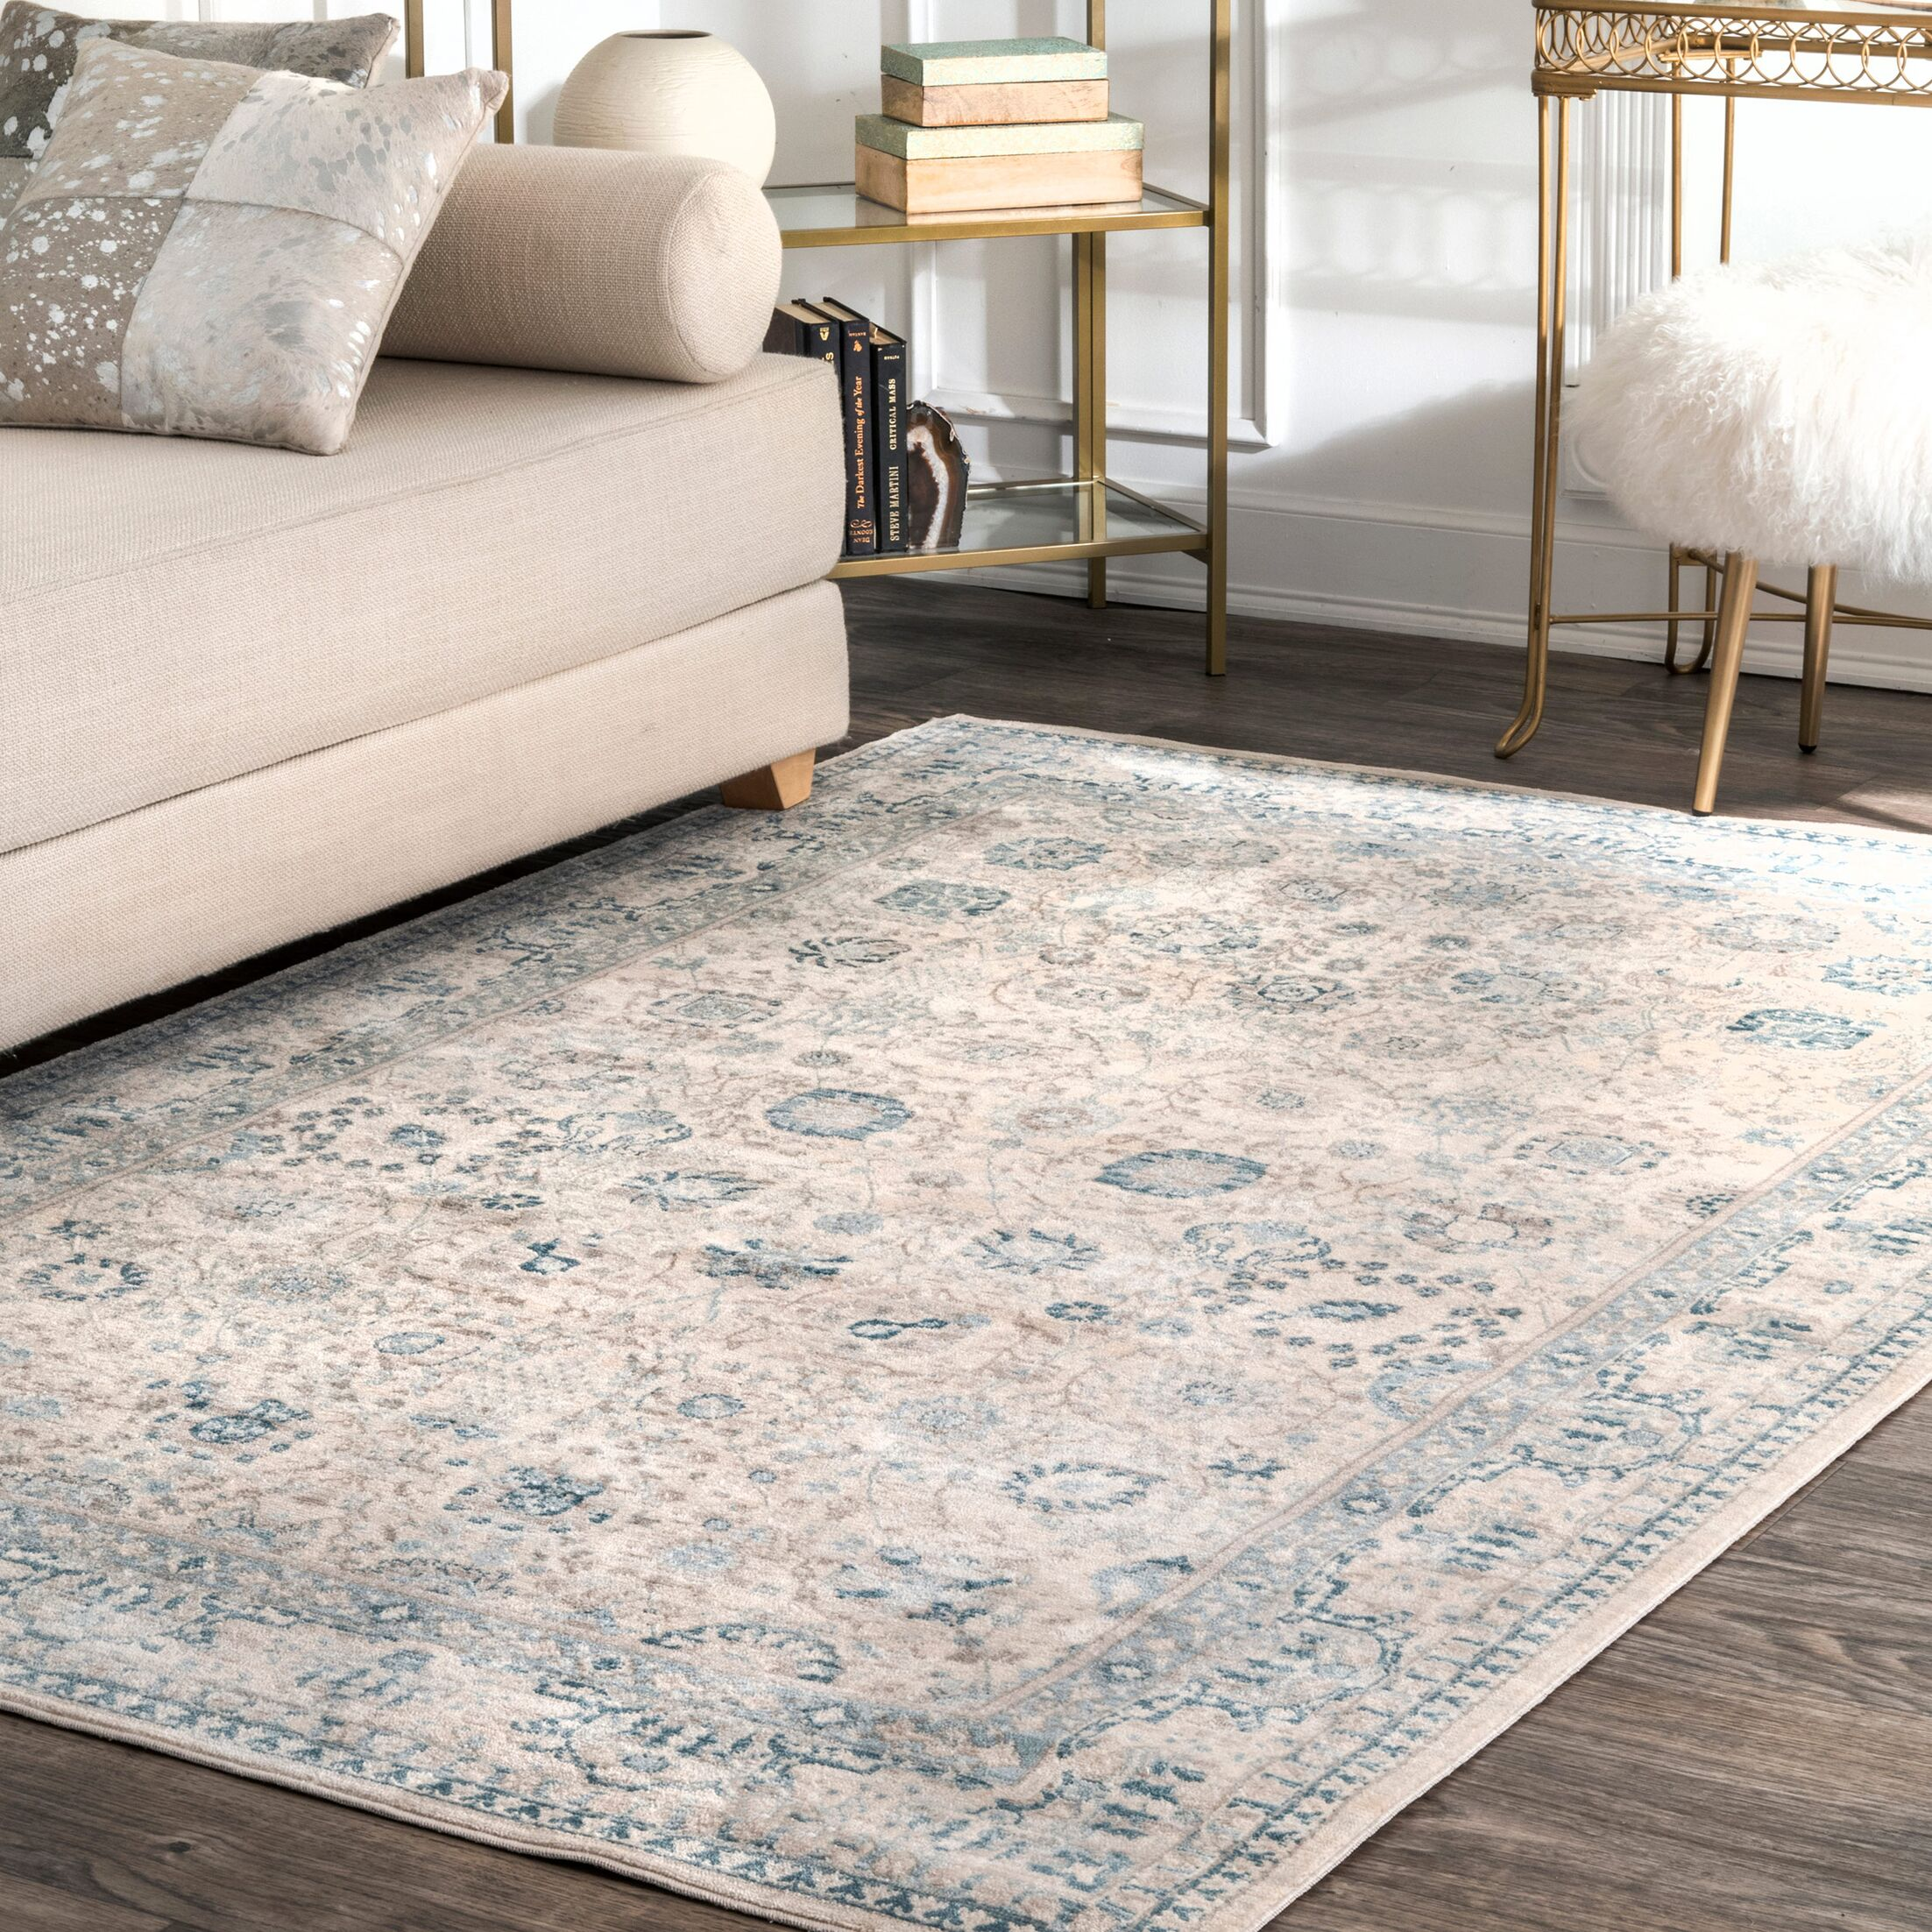 Armancourt Bone Area Rug Rug Size: Rectangle 7'10